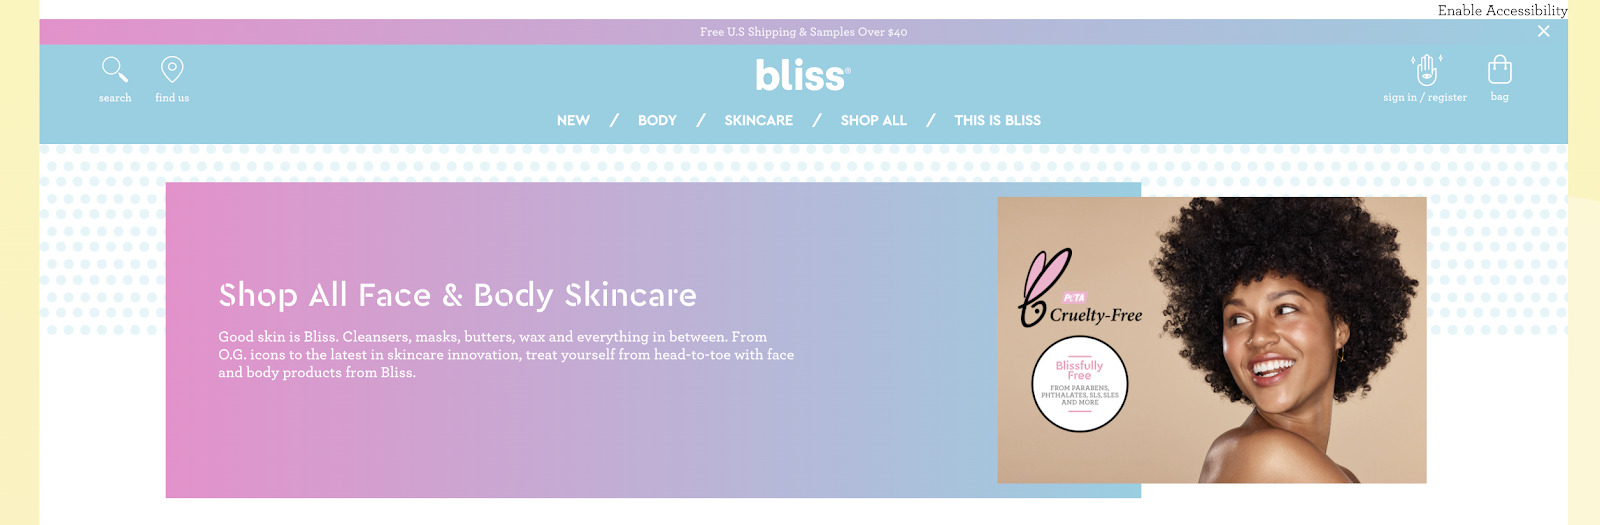 Bliss example